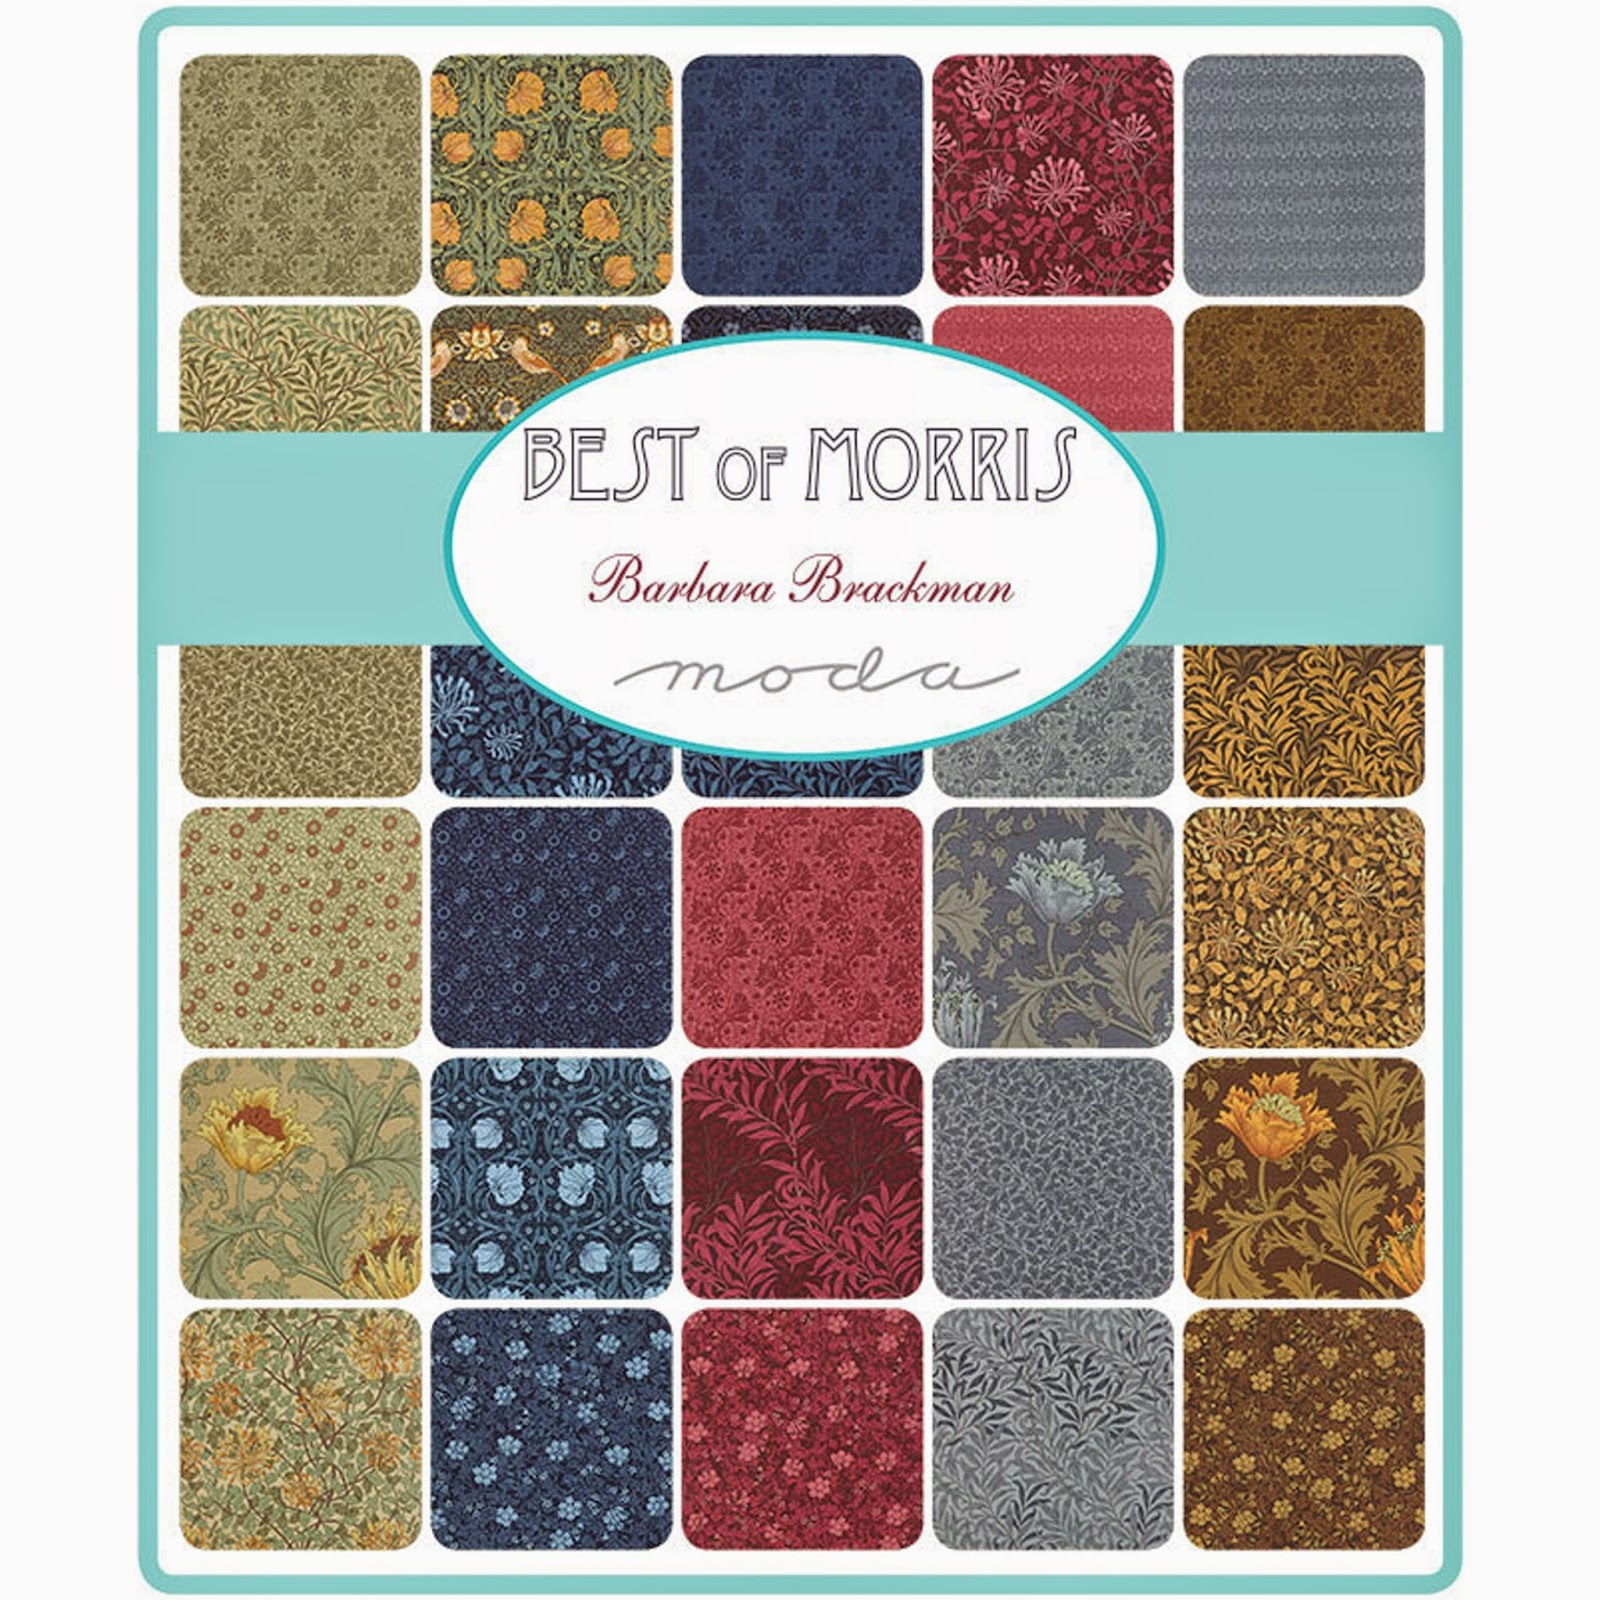 Moda BEST OF MORRIS Fabric by Barbara Brackman for Moda Fabrics